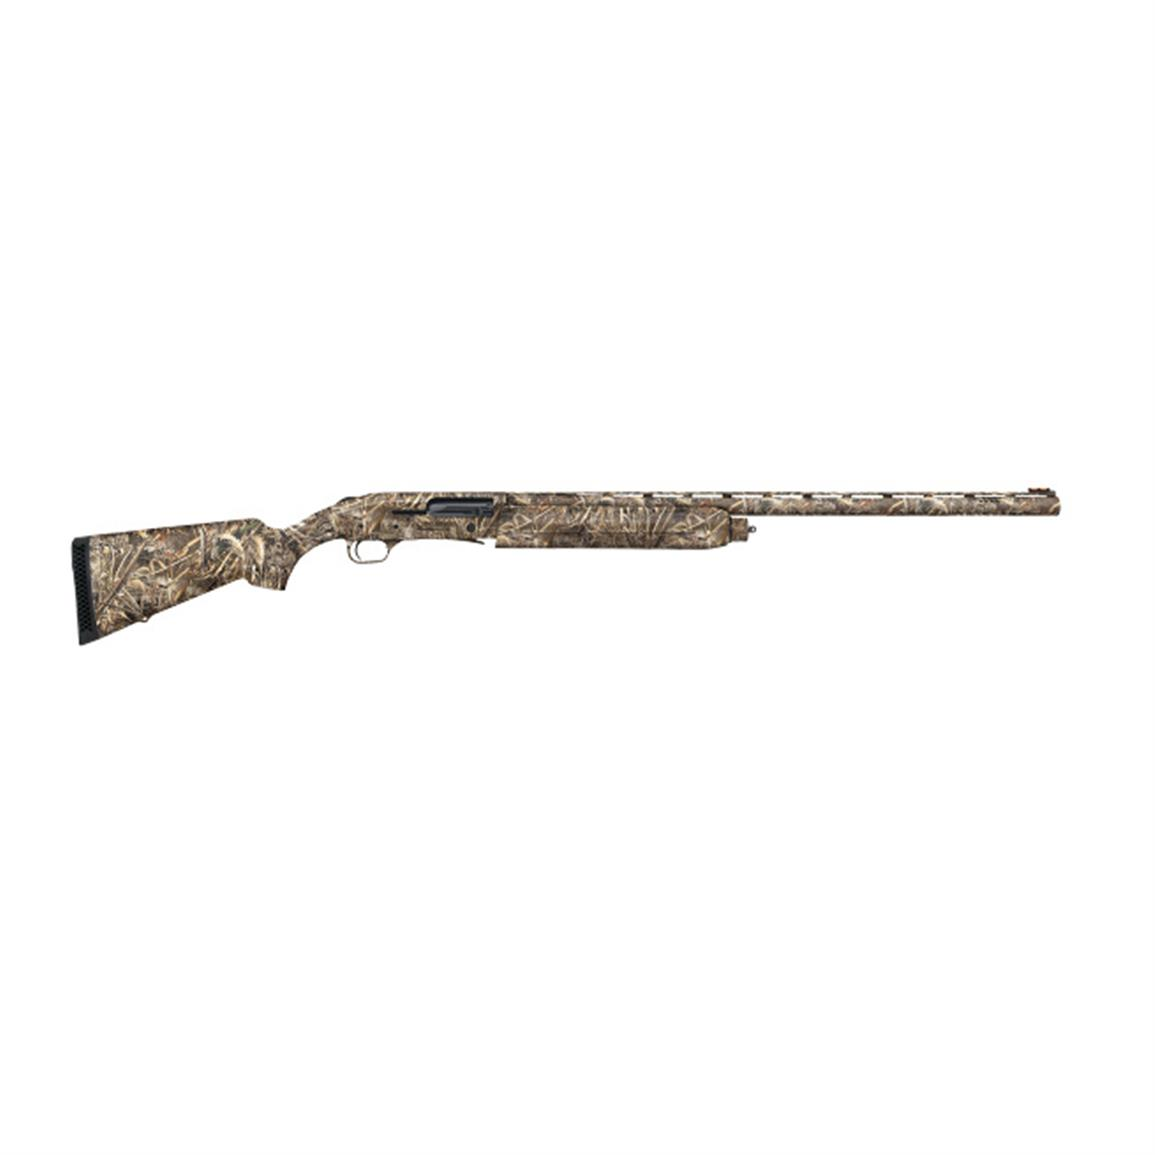 Mossberg 930 DC Pro Series, Semi-automatic, 12 Gauge, 85137, 015813851374, 28 inch Barrel